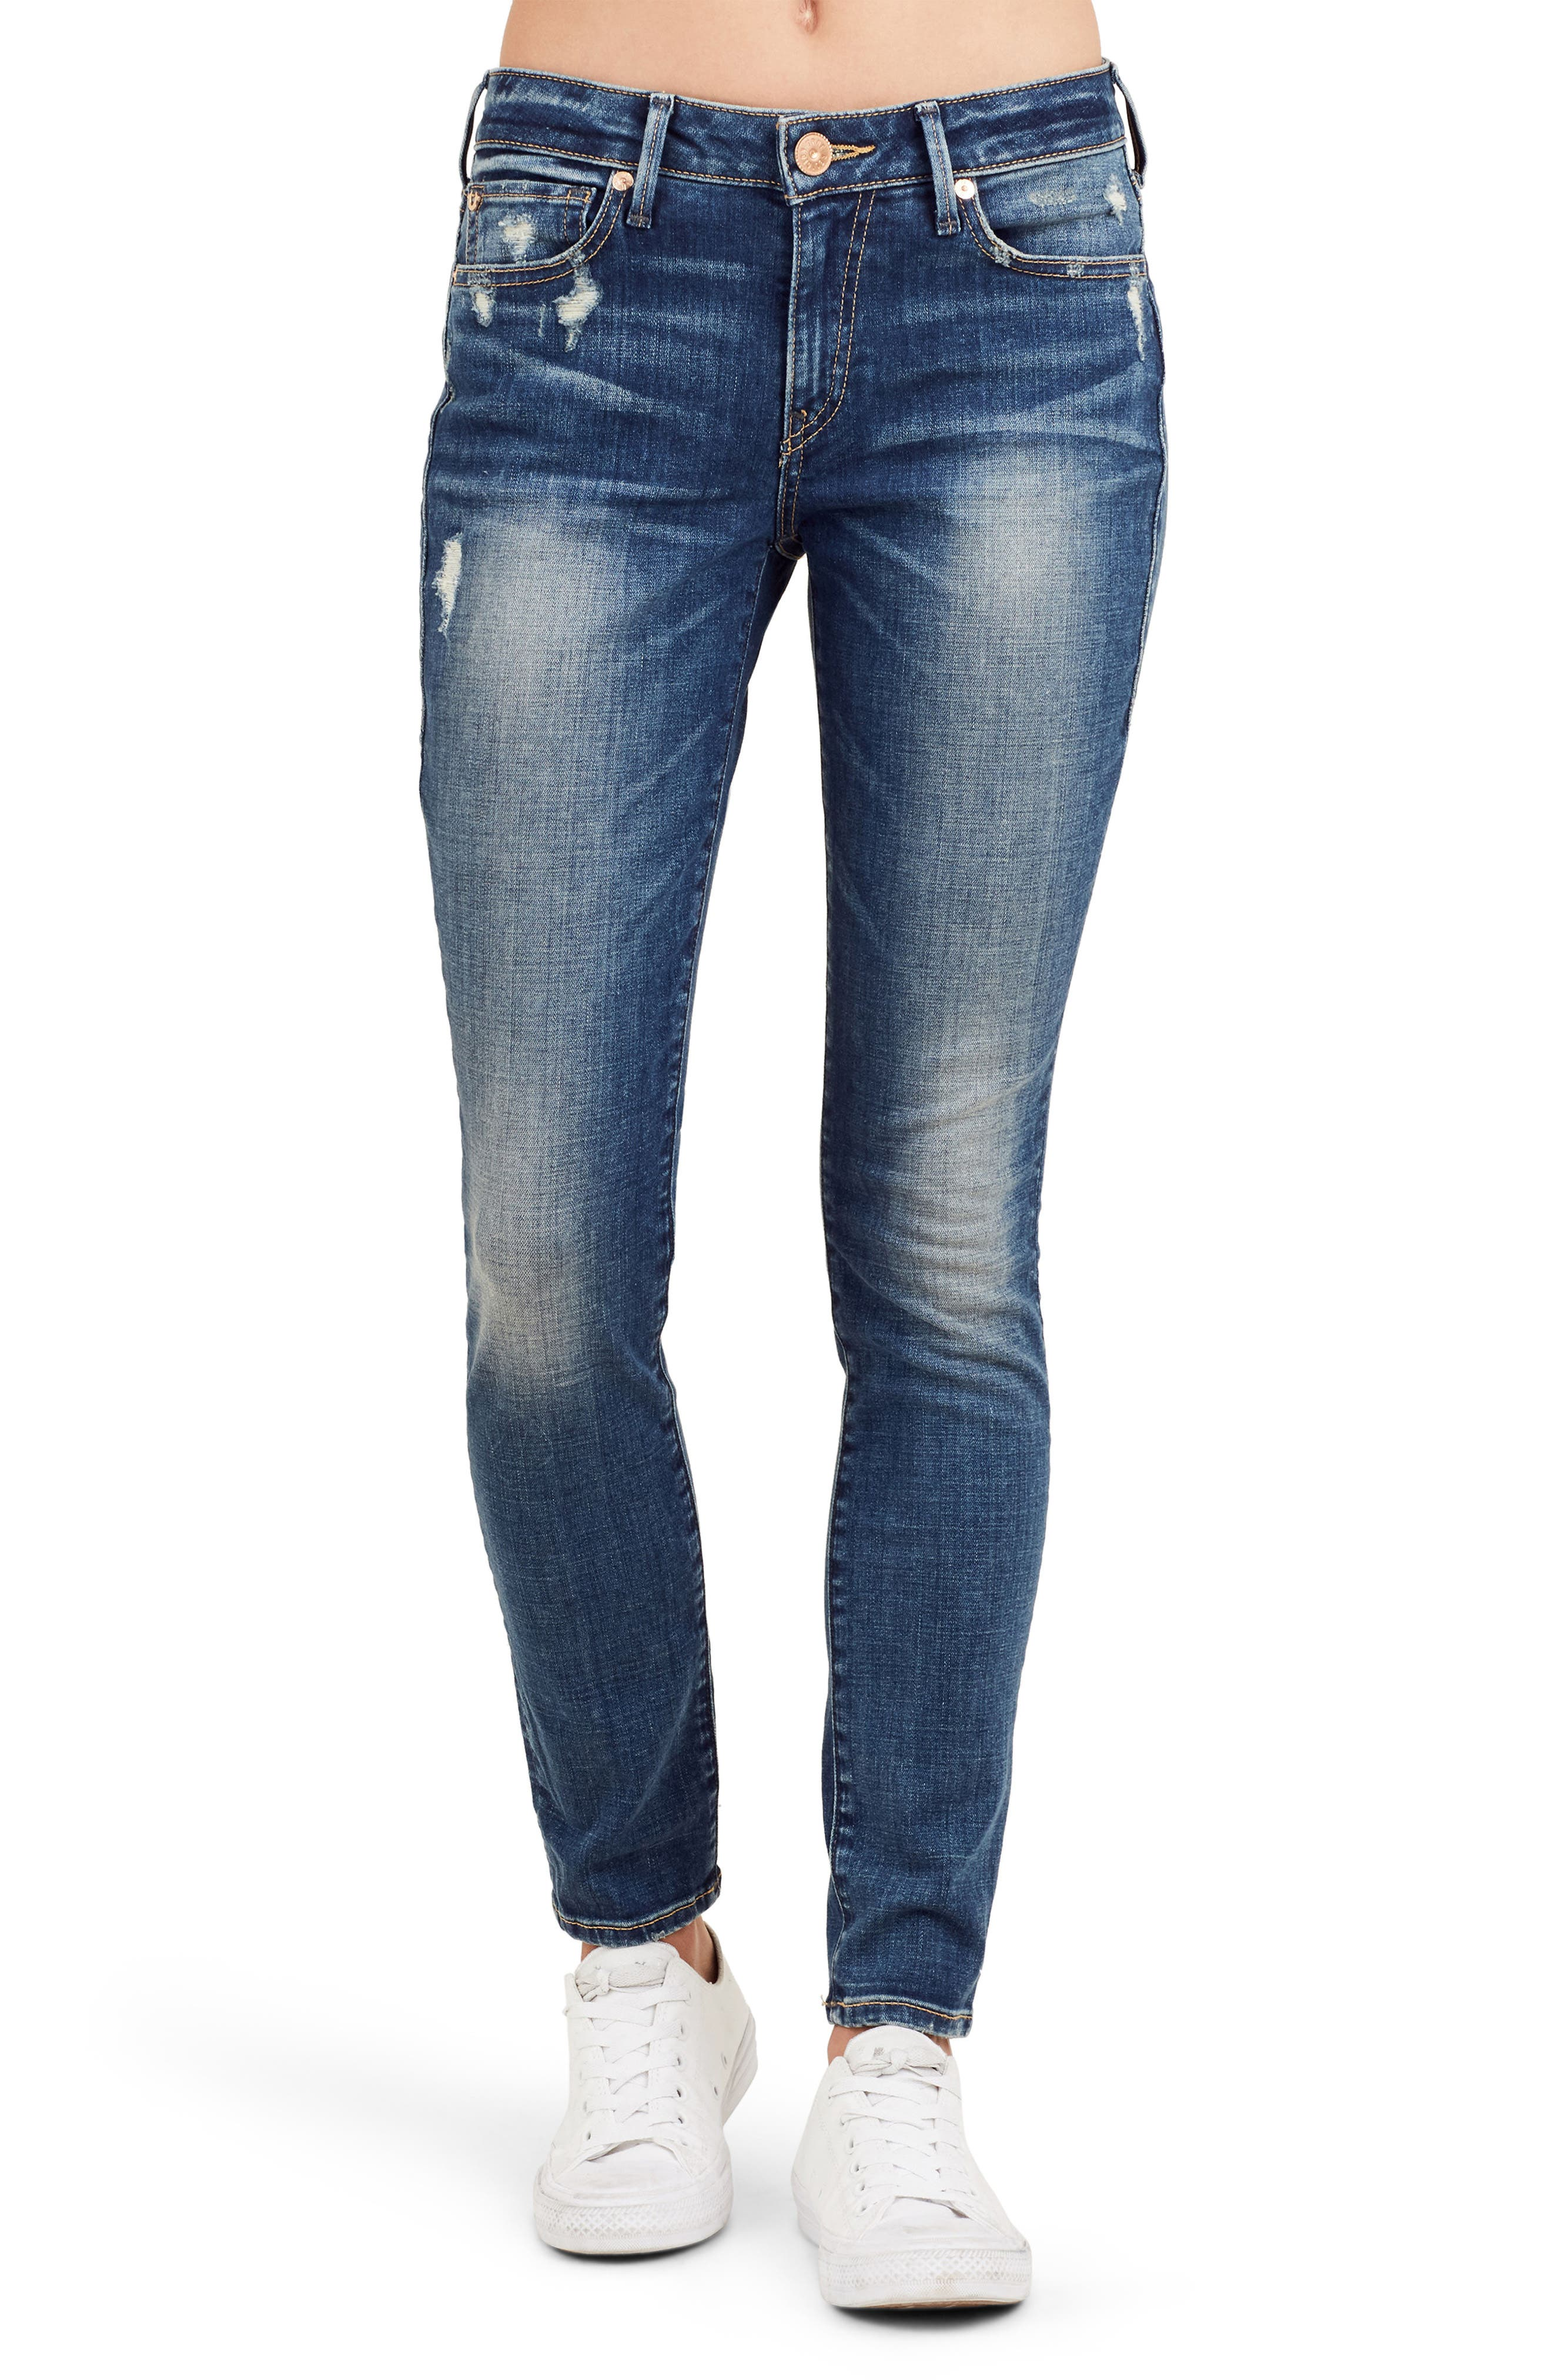 Jennie Curvy Ankle Skinny Jeans,                         Main,                         color, Bell Blues